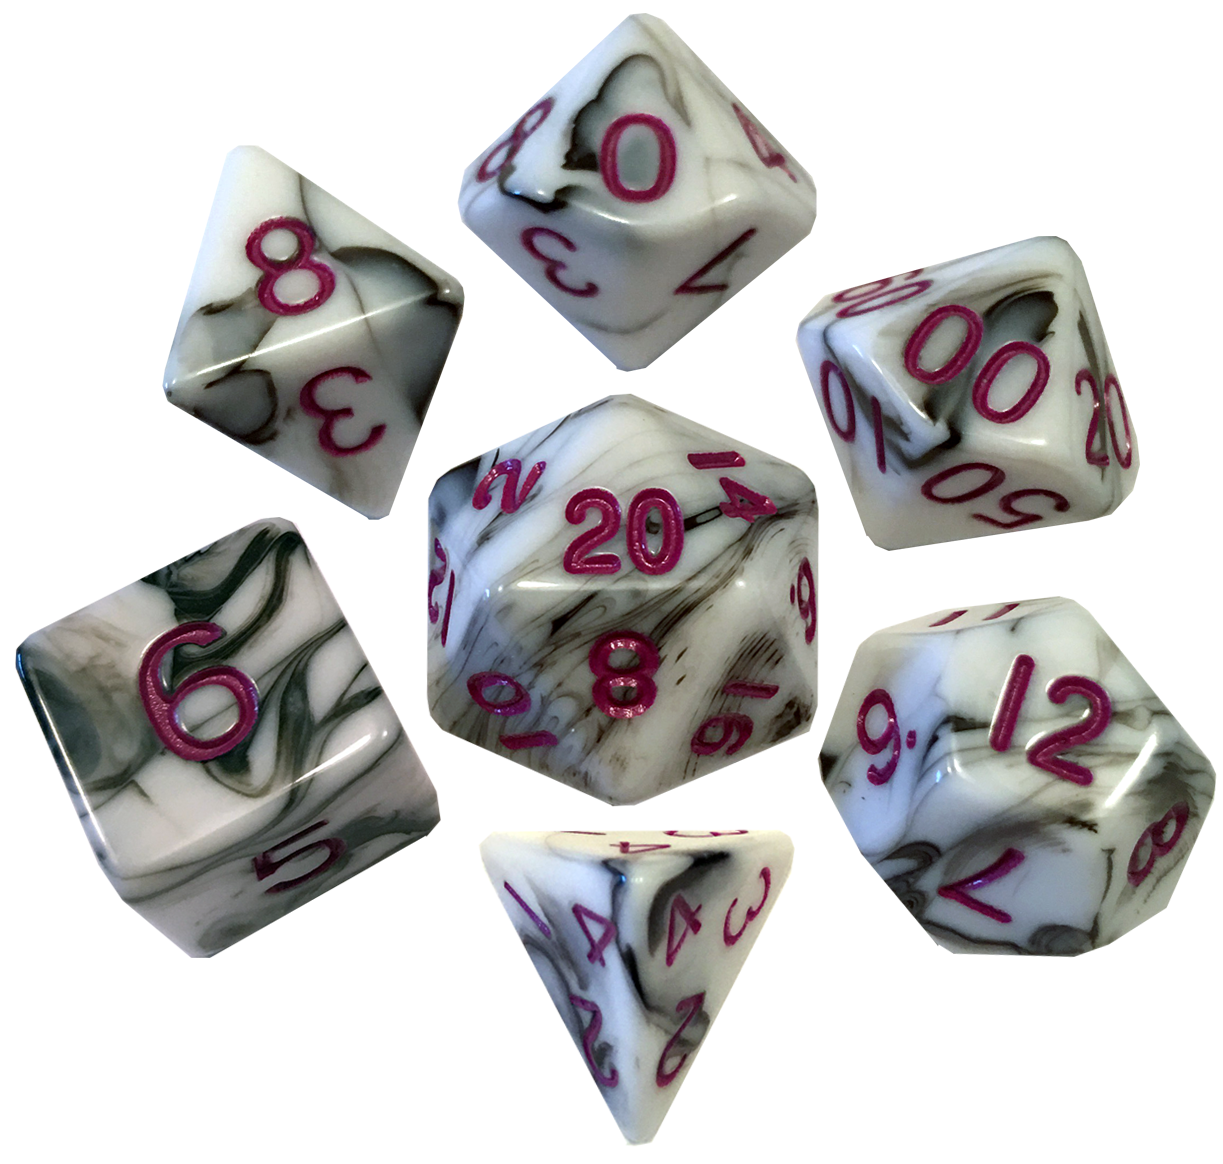 16mm Acrylic Poly Dice Set - Marble with Purple Numbers